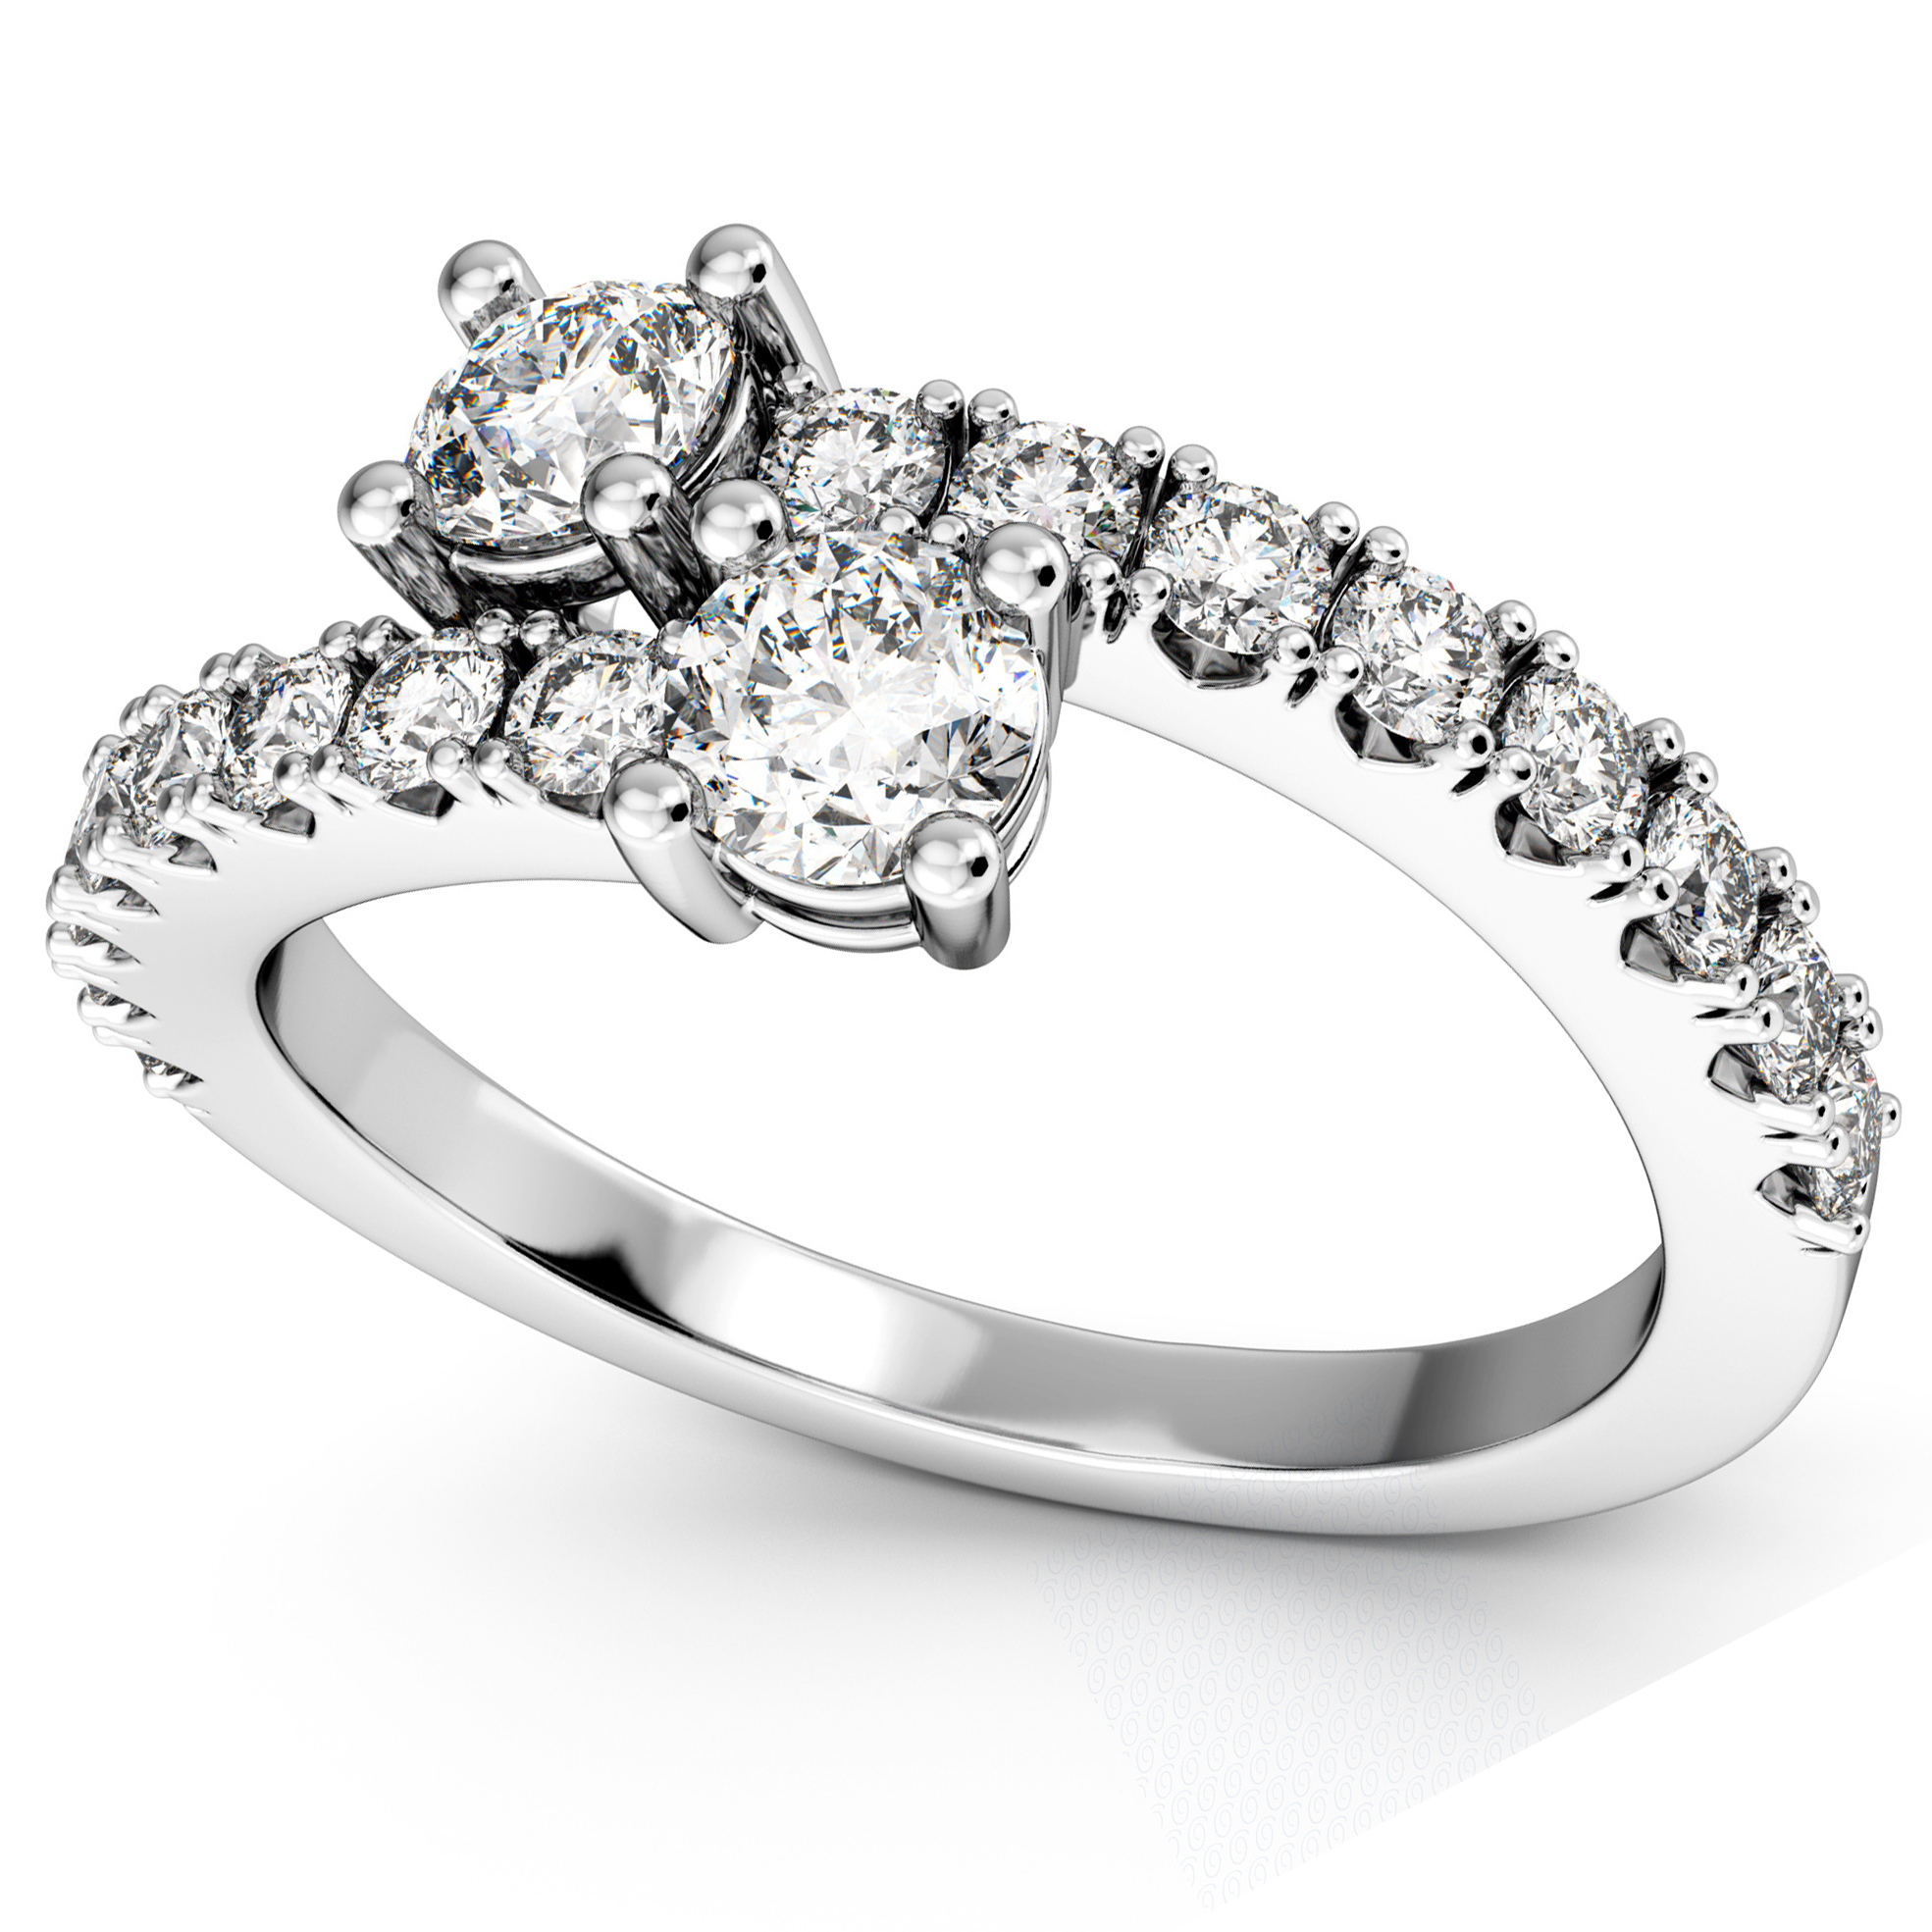 style engagement s ring b platinum designers rings princess pave michael sided colored design wedding three stone